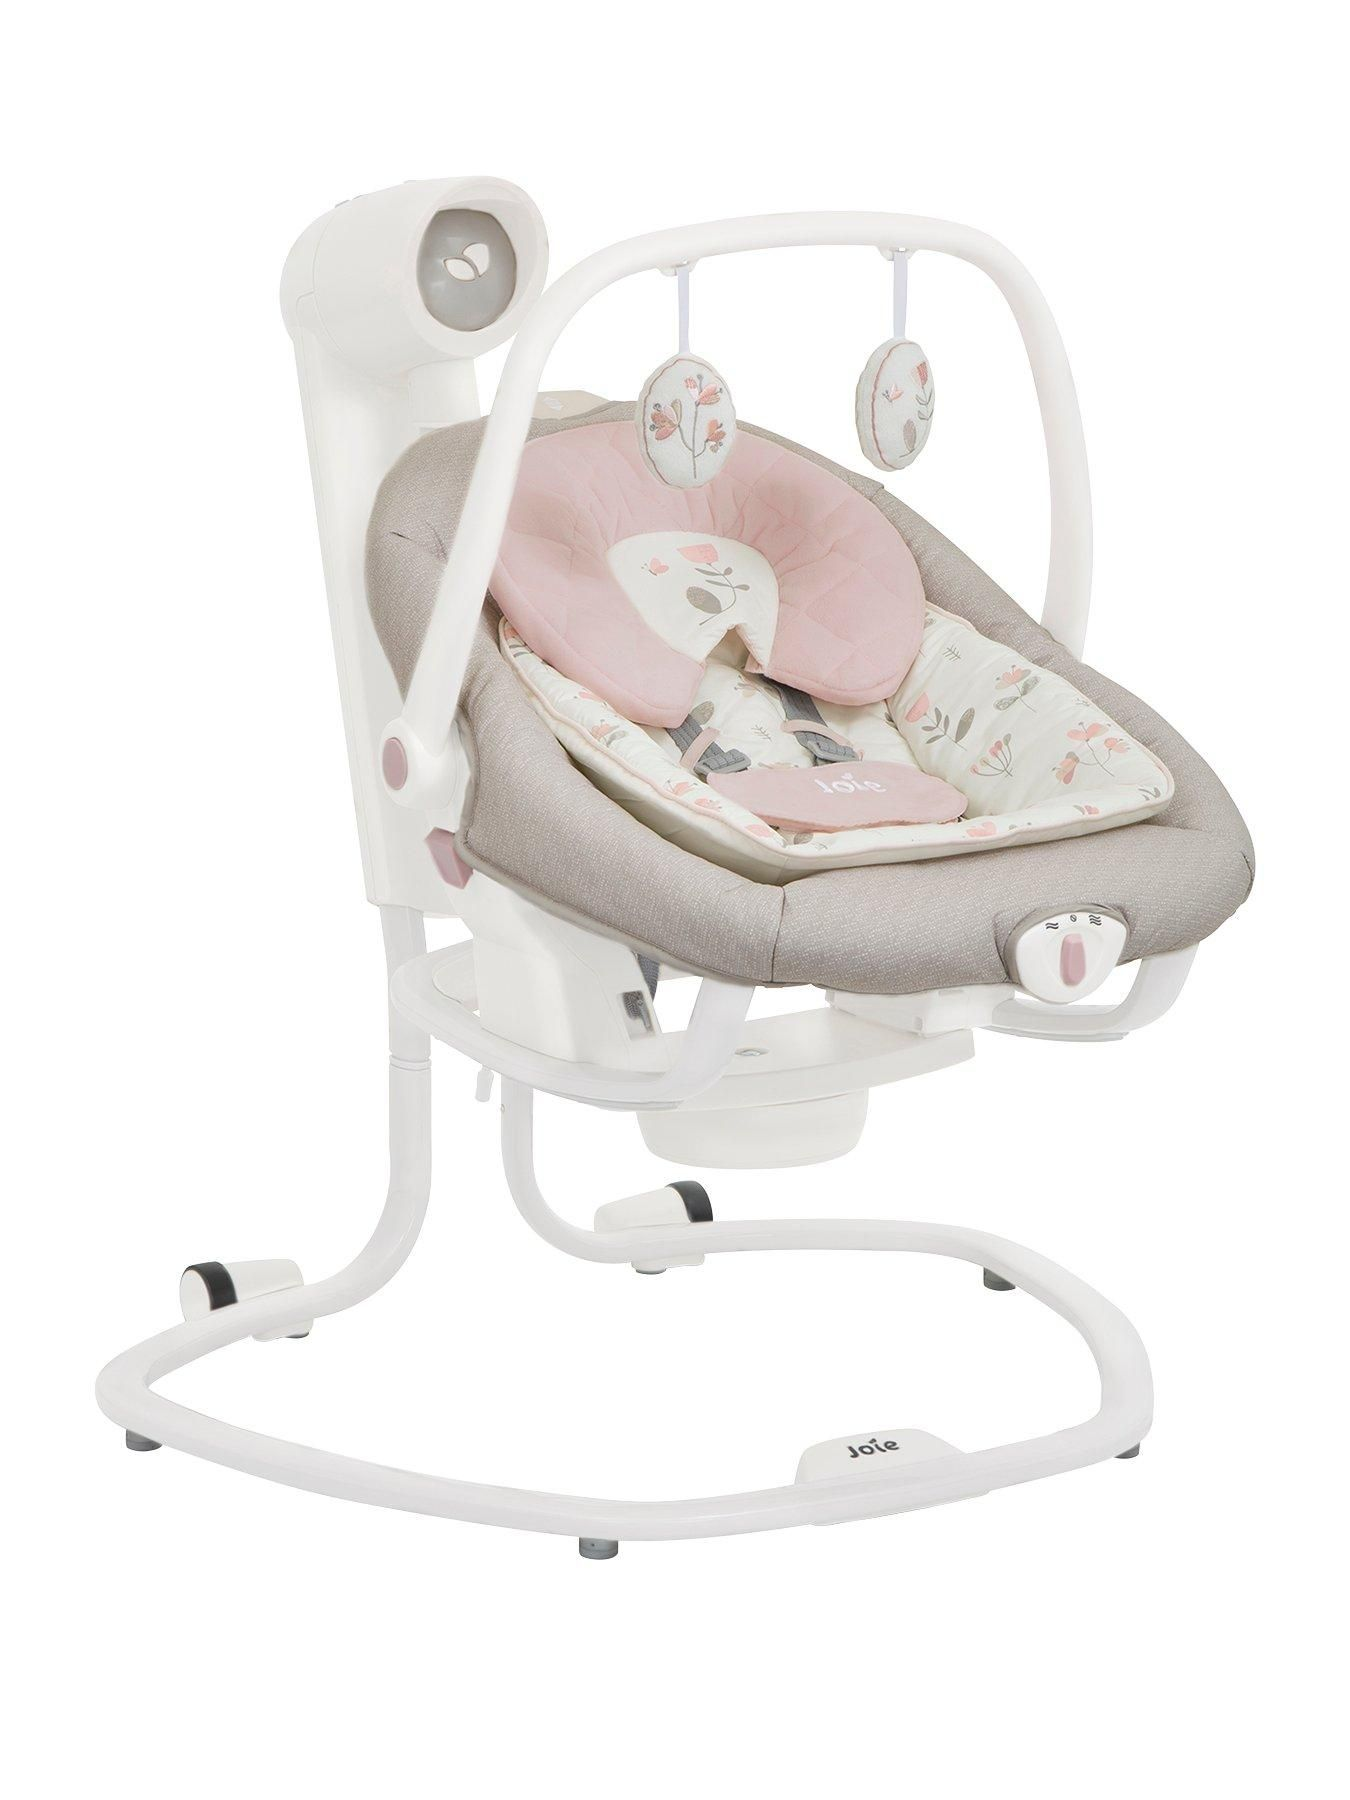 Joie Baby Swing Rocker Joie Joie Serina 2 In 1 Swing Rocker Forever Flowers